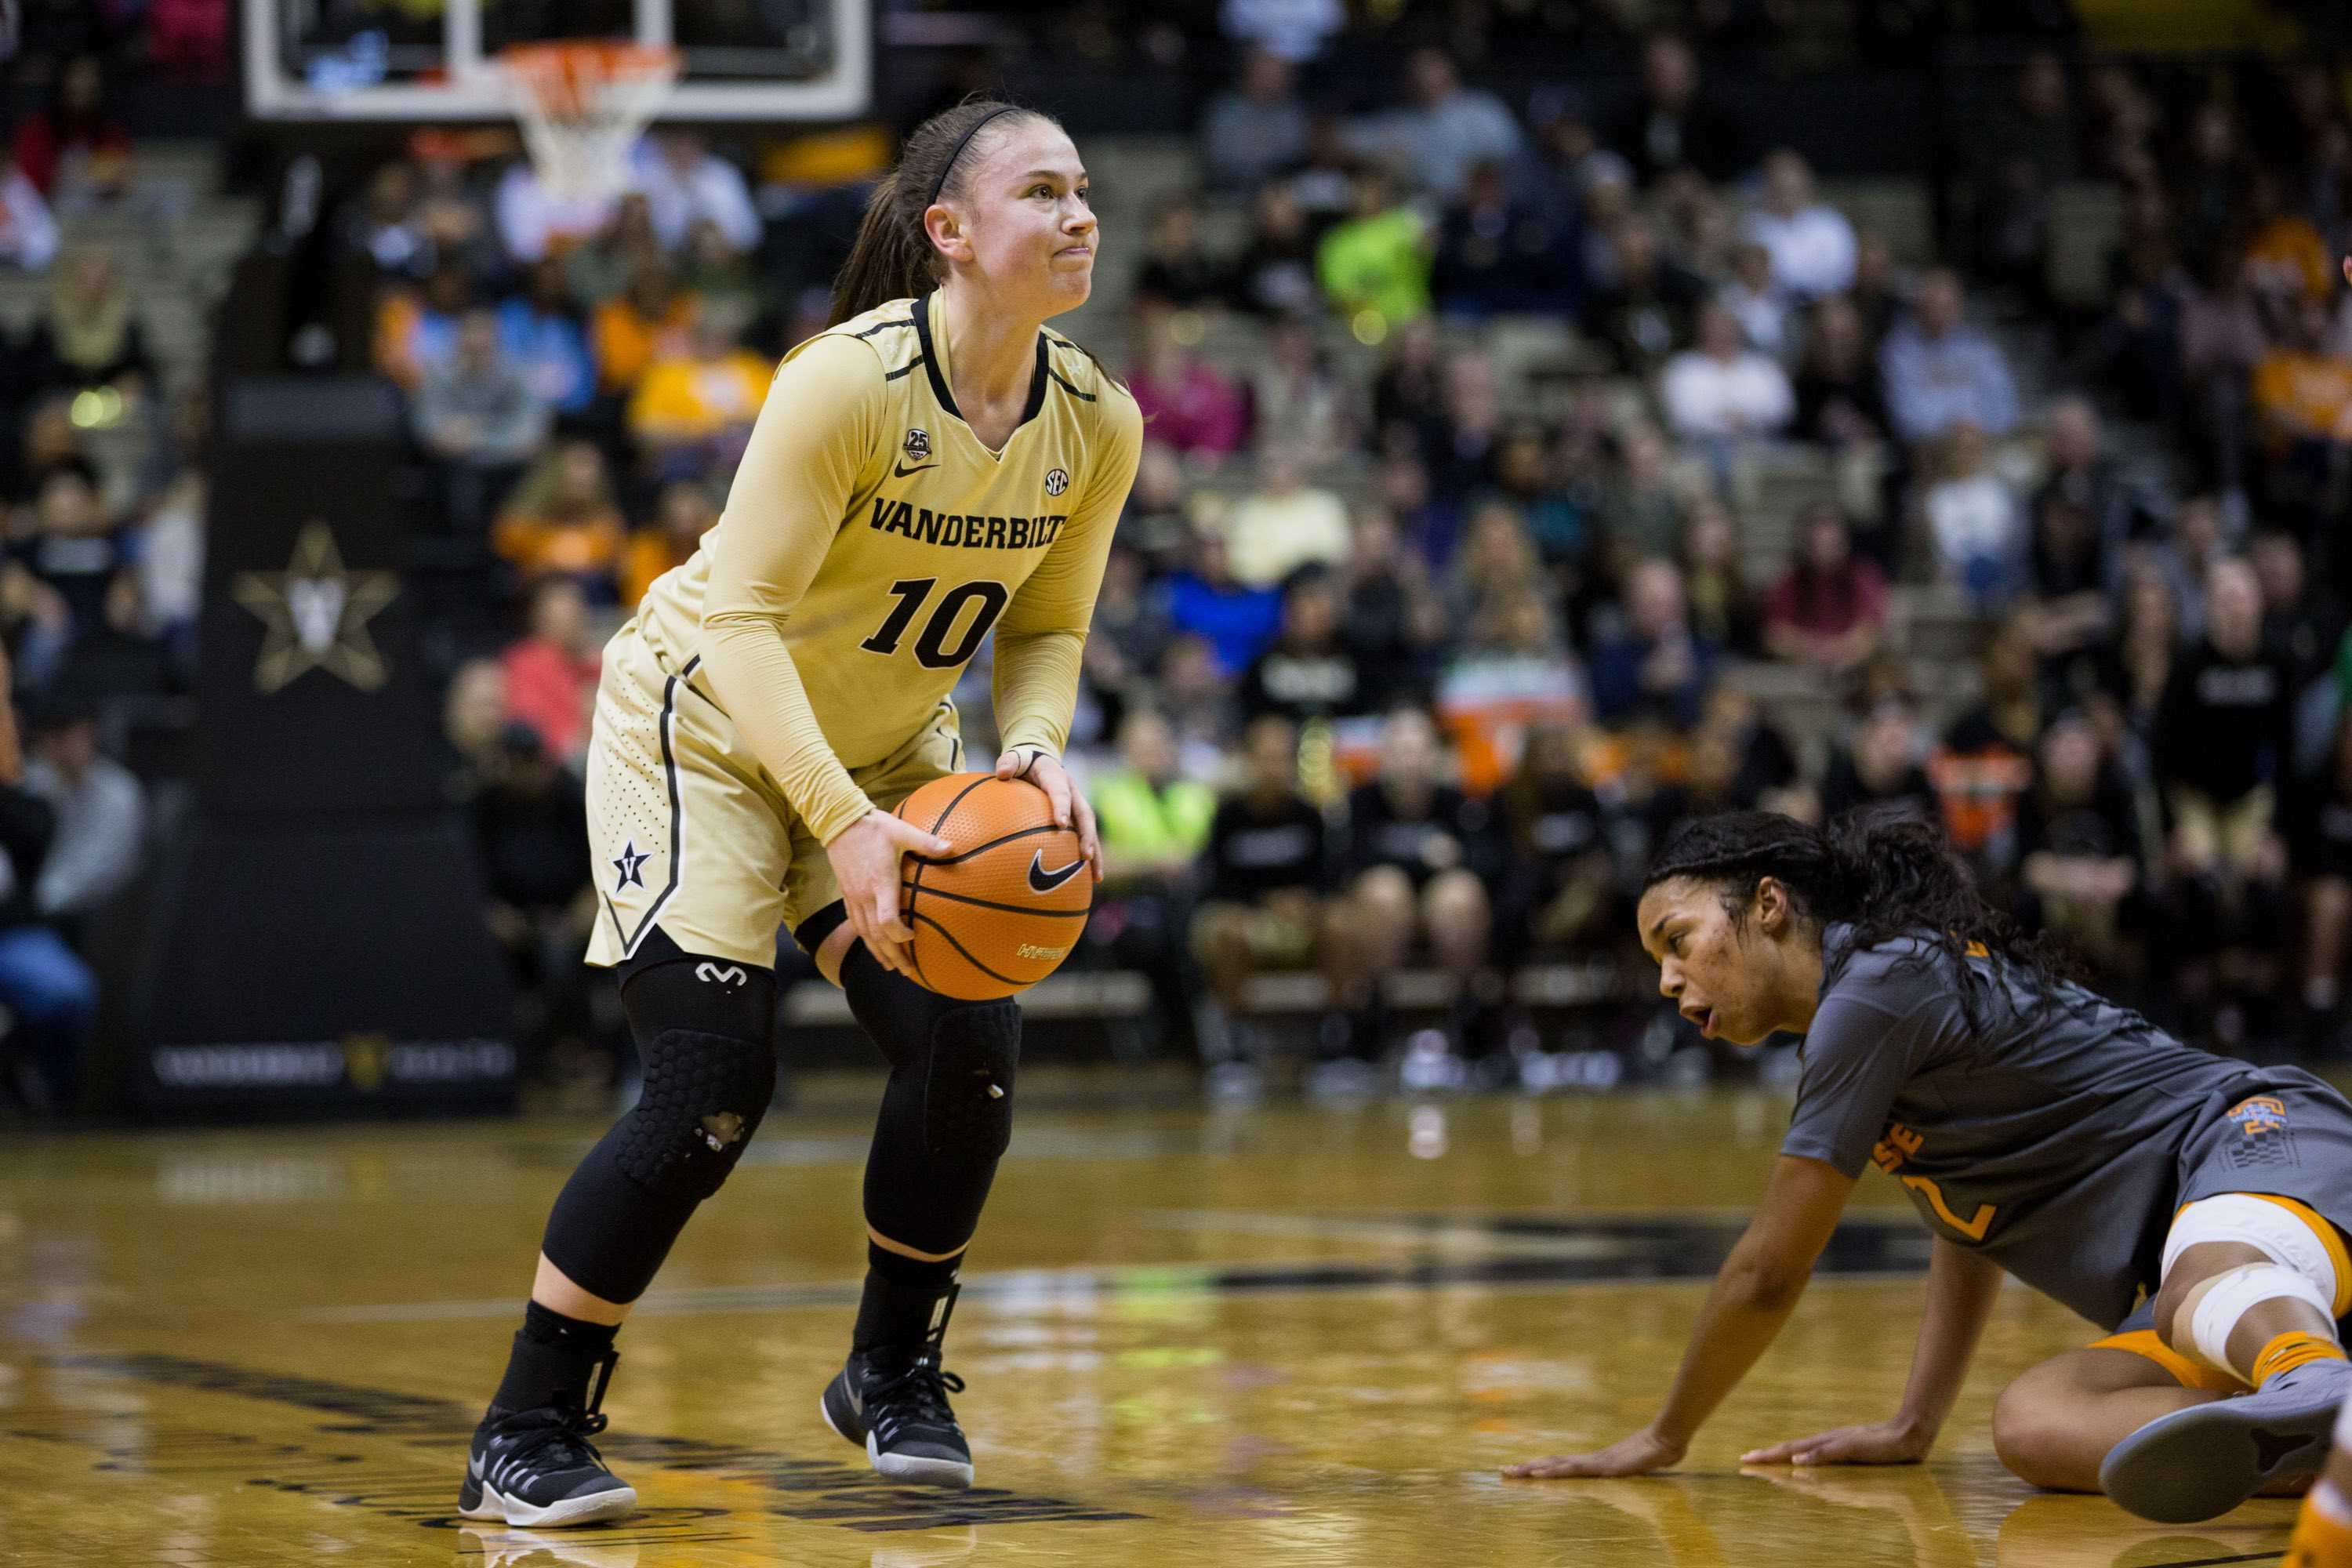 The Vanderbilt Women's Basketball team play the Lady Vols on Sunday, February 4, 2018 in Memorial Gym. (Photo by Claire Barnett)